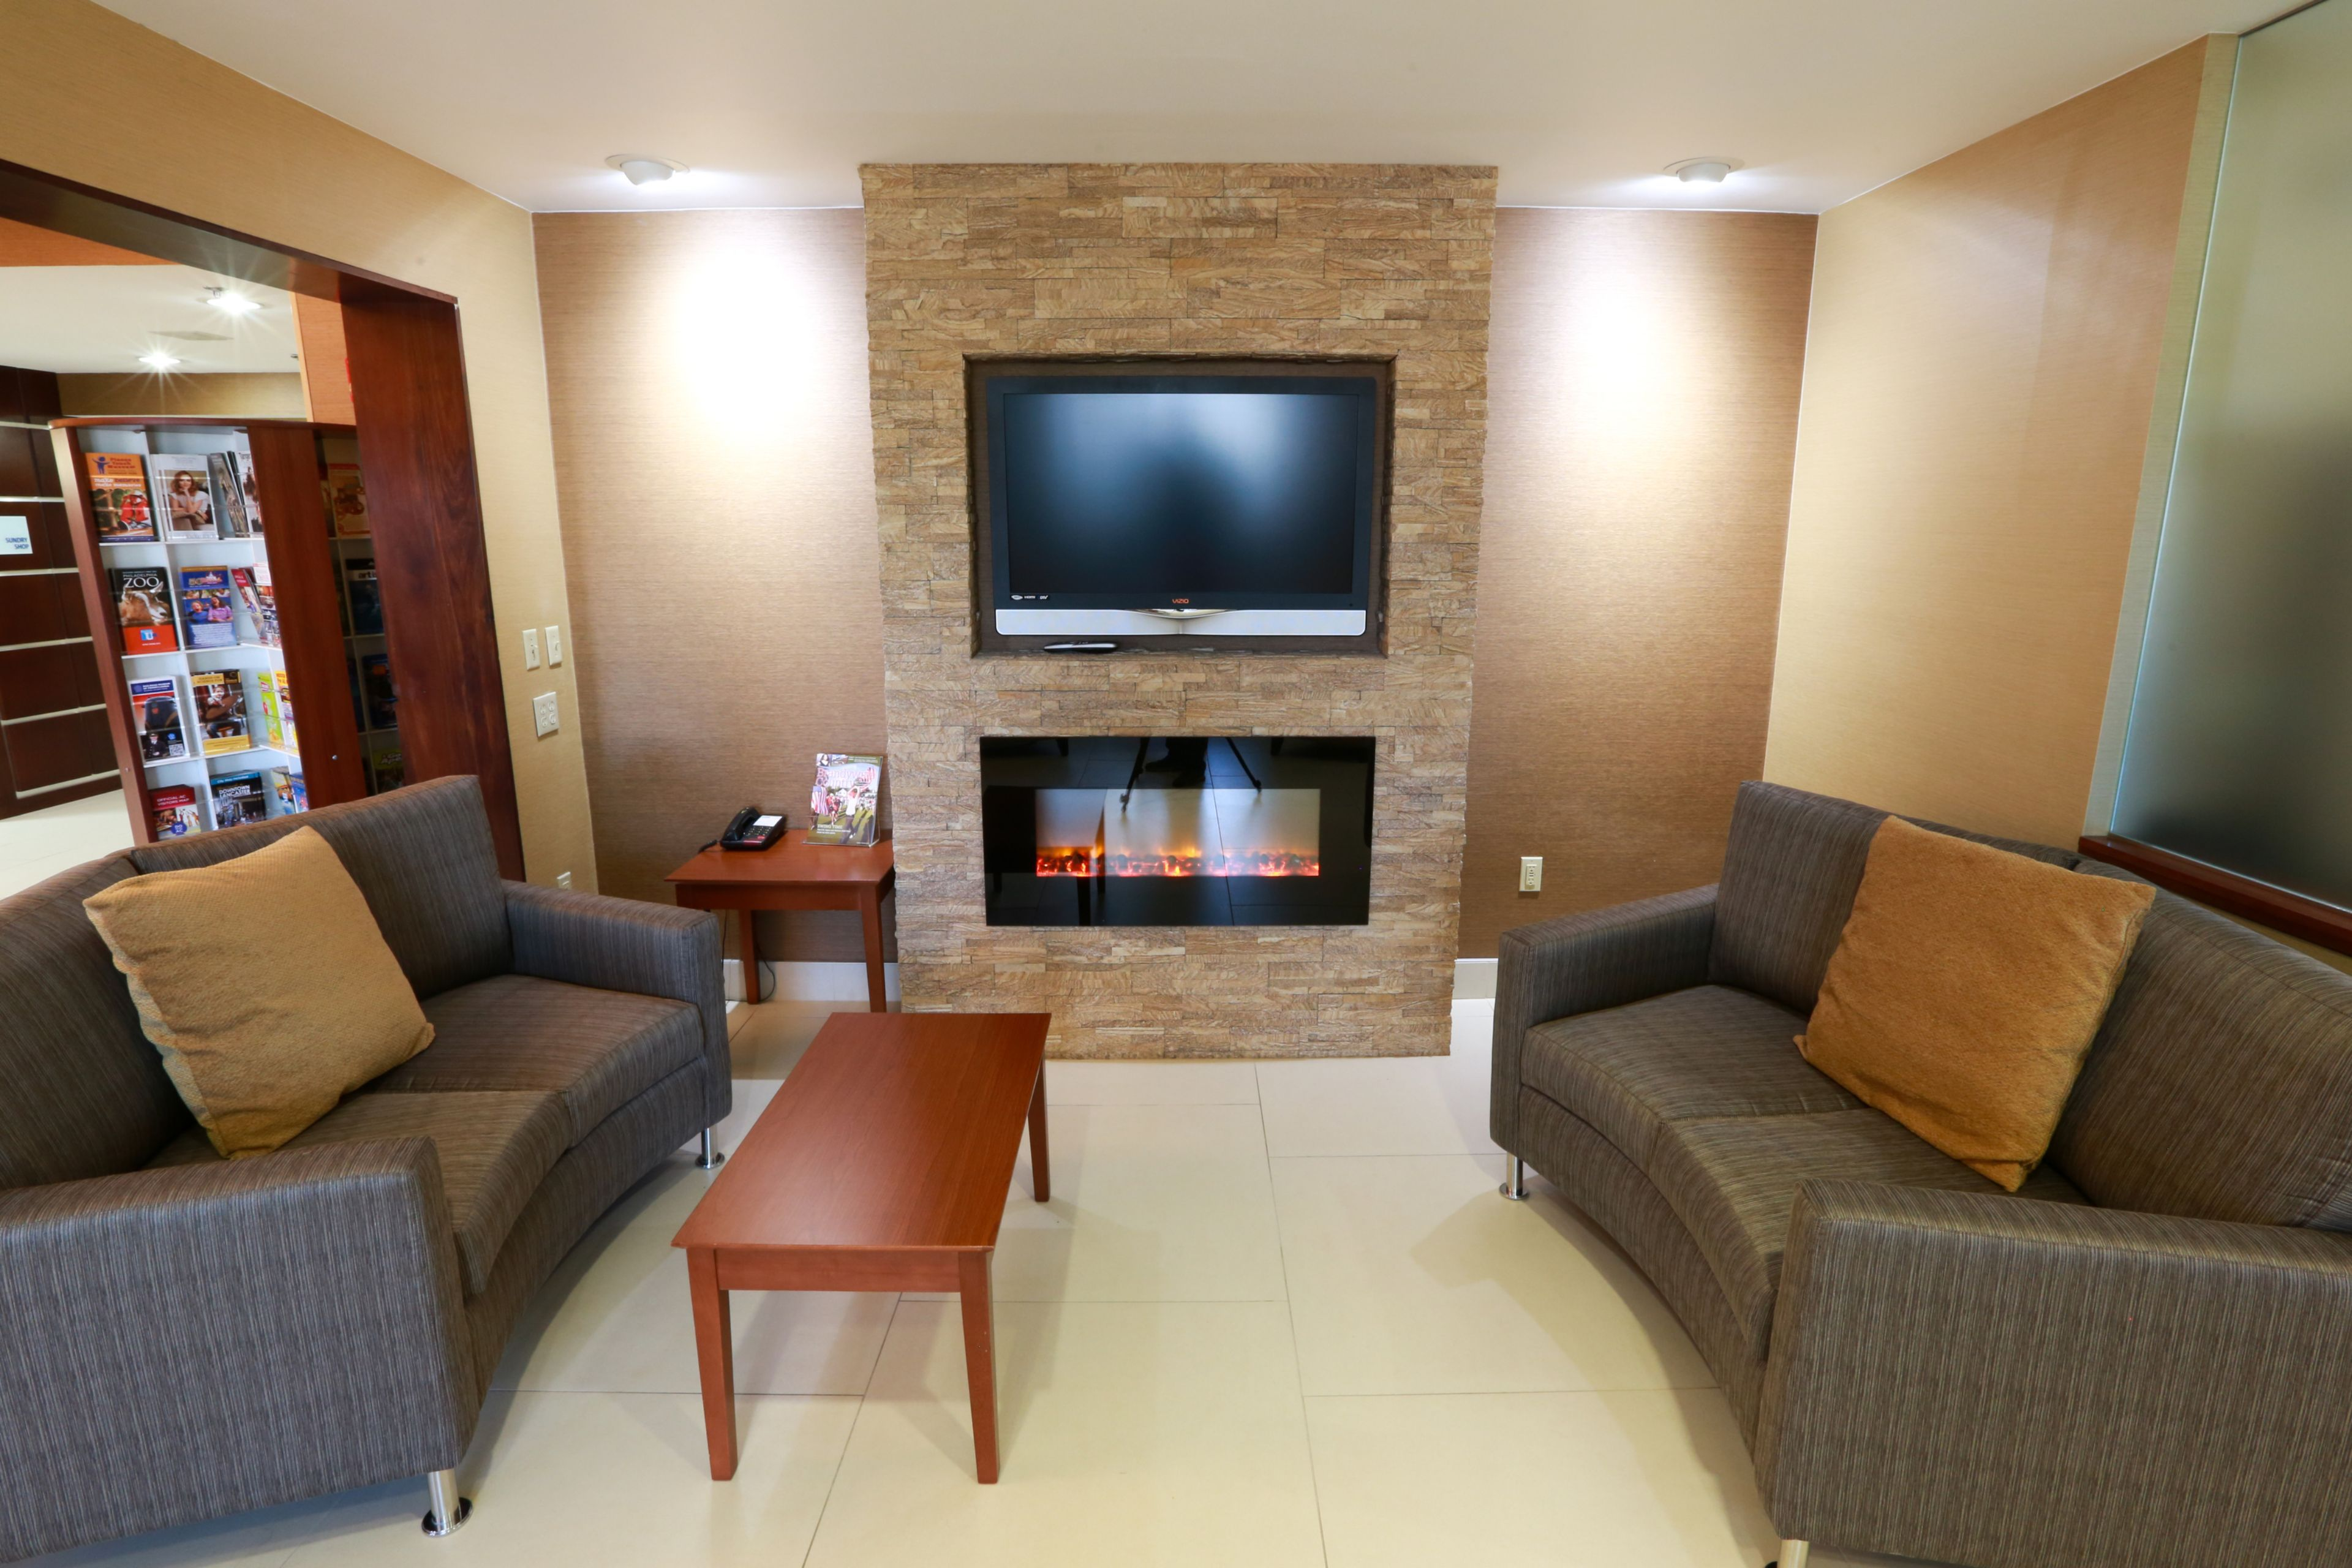 Holiday Inn Express & Suites West Chester image 6